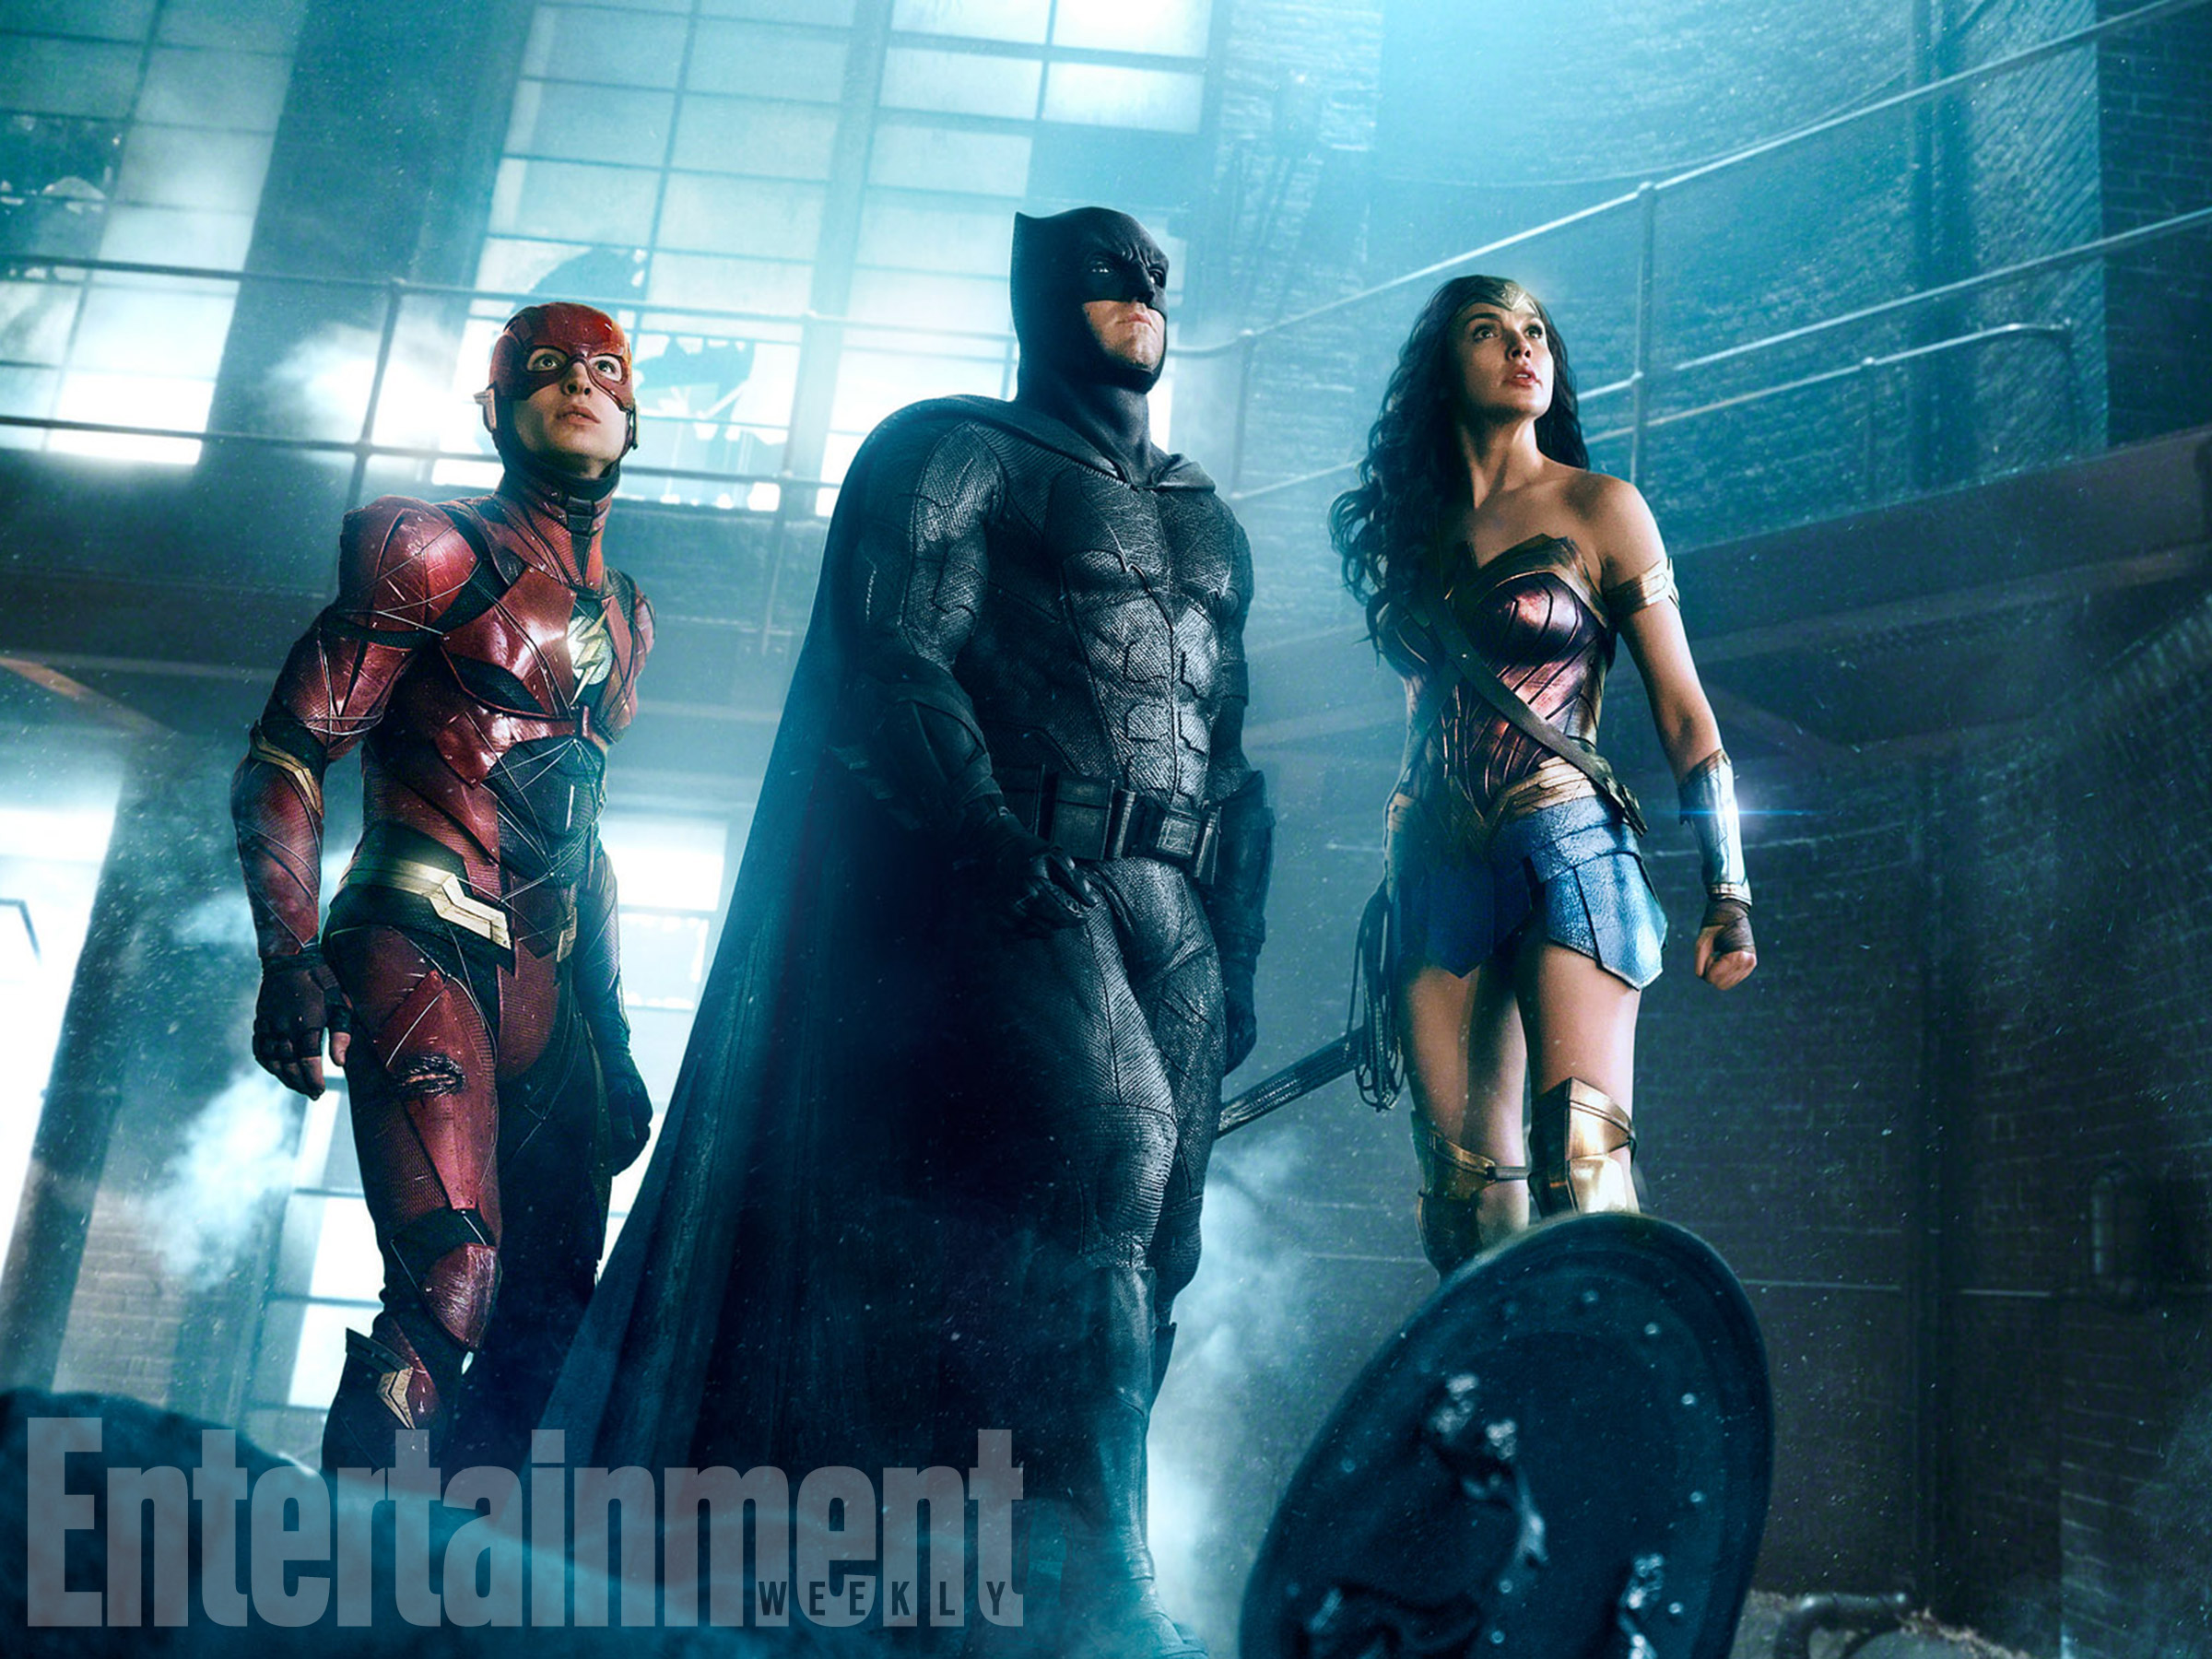 New Official Photo Of Batman Wonder Woman And Flash From Justice